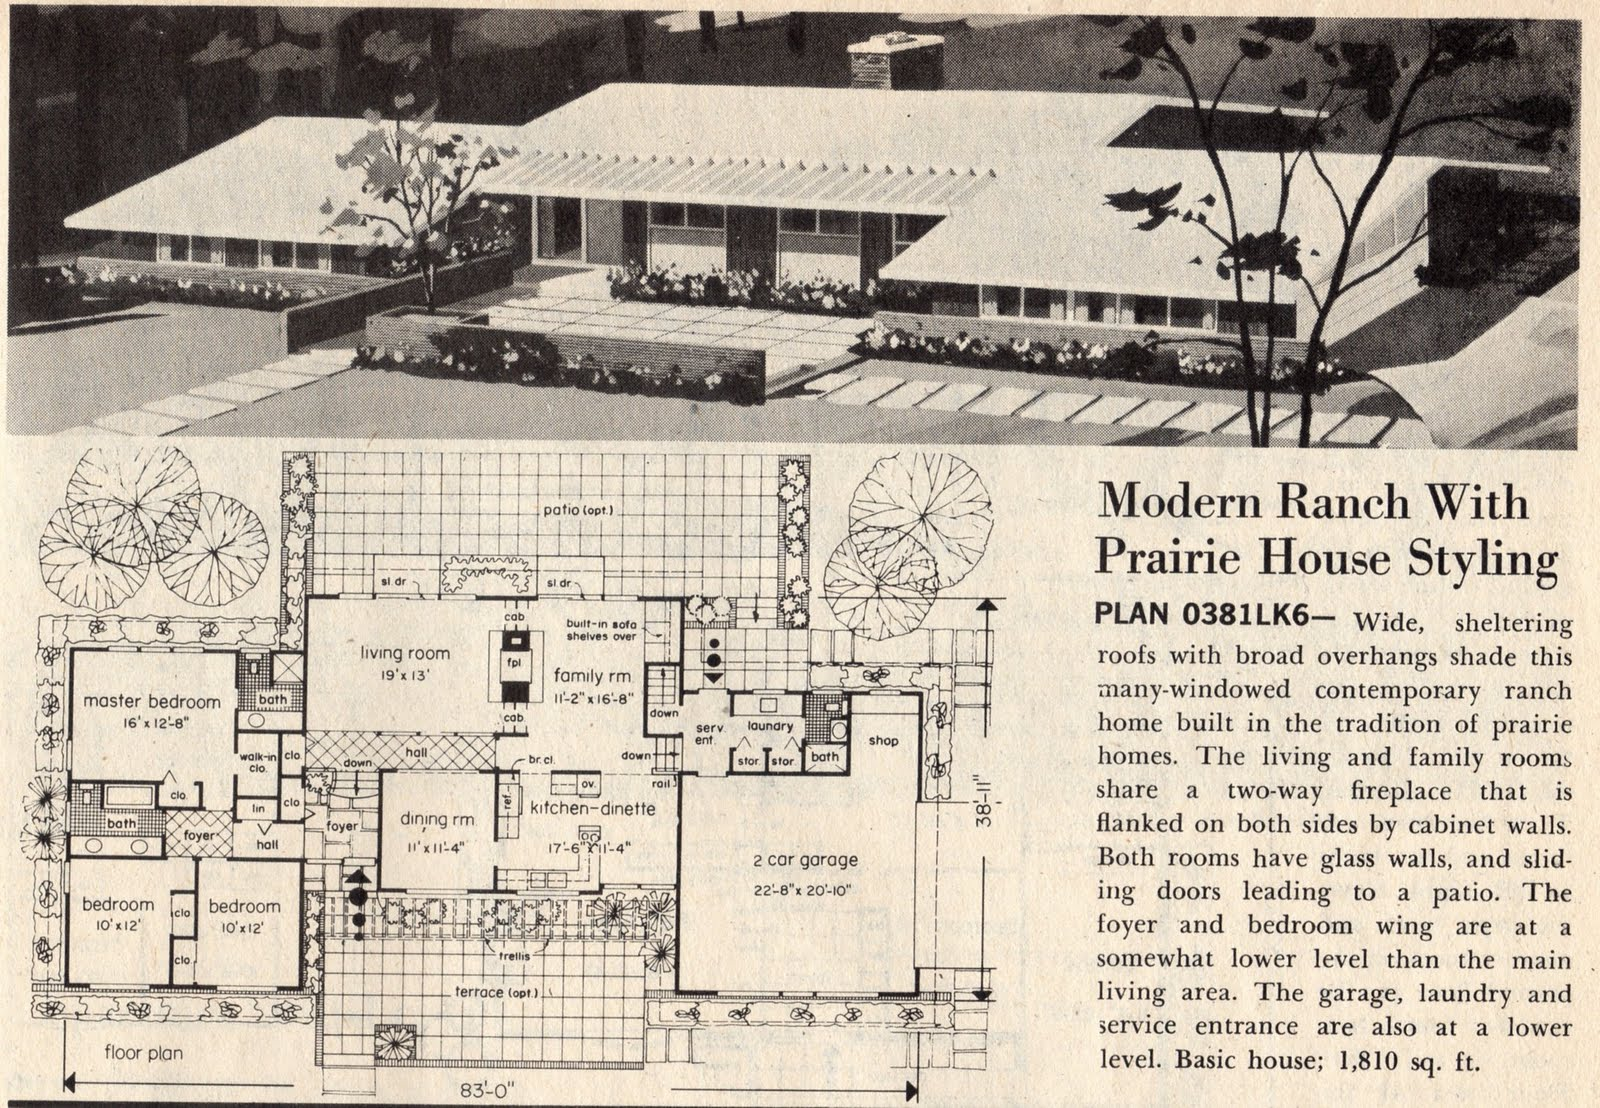 Mad for mid century june 2011 for Mid century modern ranch house plans